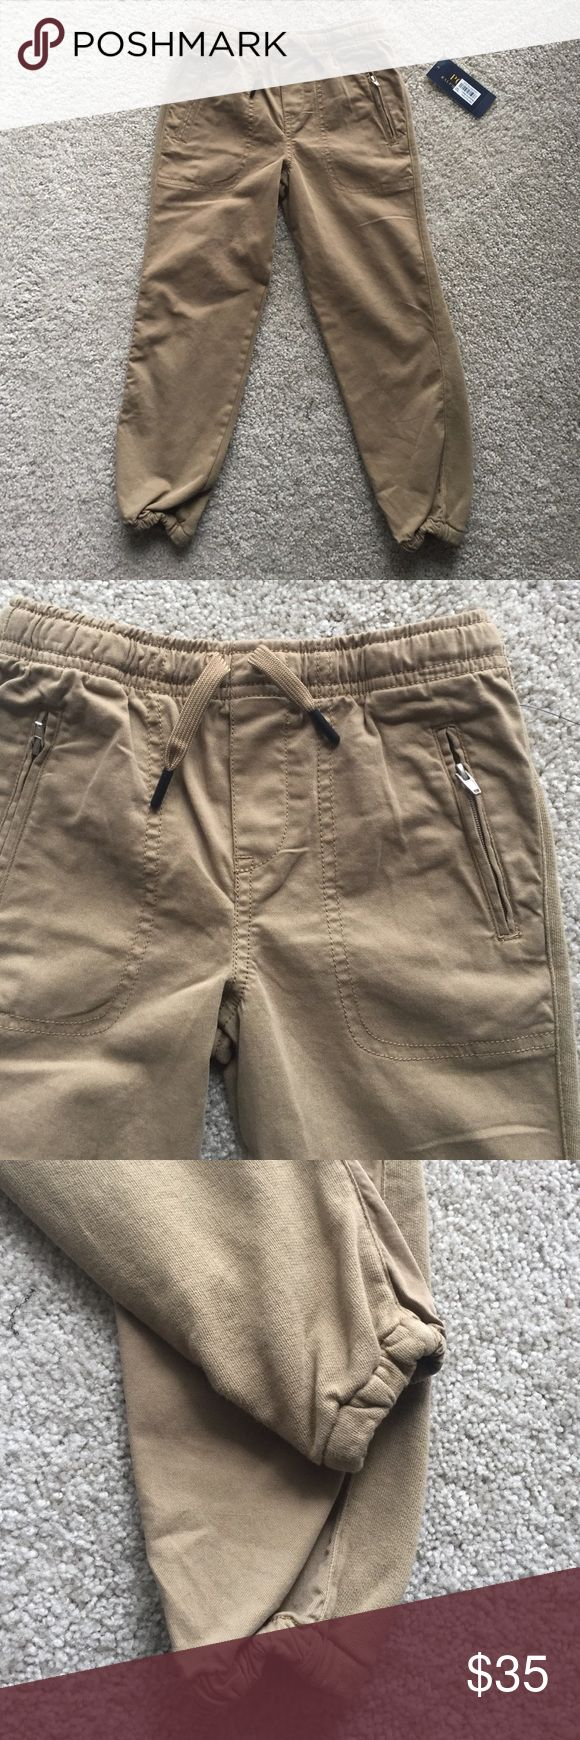 Ralph Lauren 5T boy jogger pants Nwt. In perfect new condition. Very comfy and trendy pants! 98% cotton 2% elastane. No trade Ralph Lauren Bottoms Casual